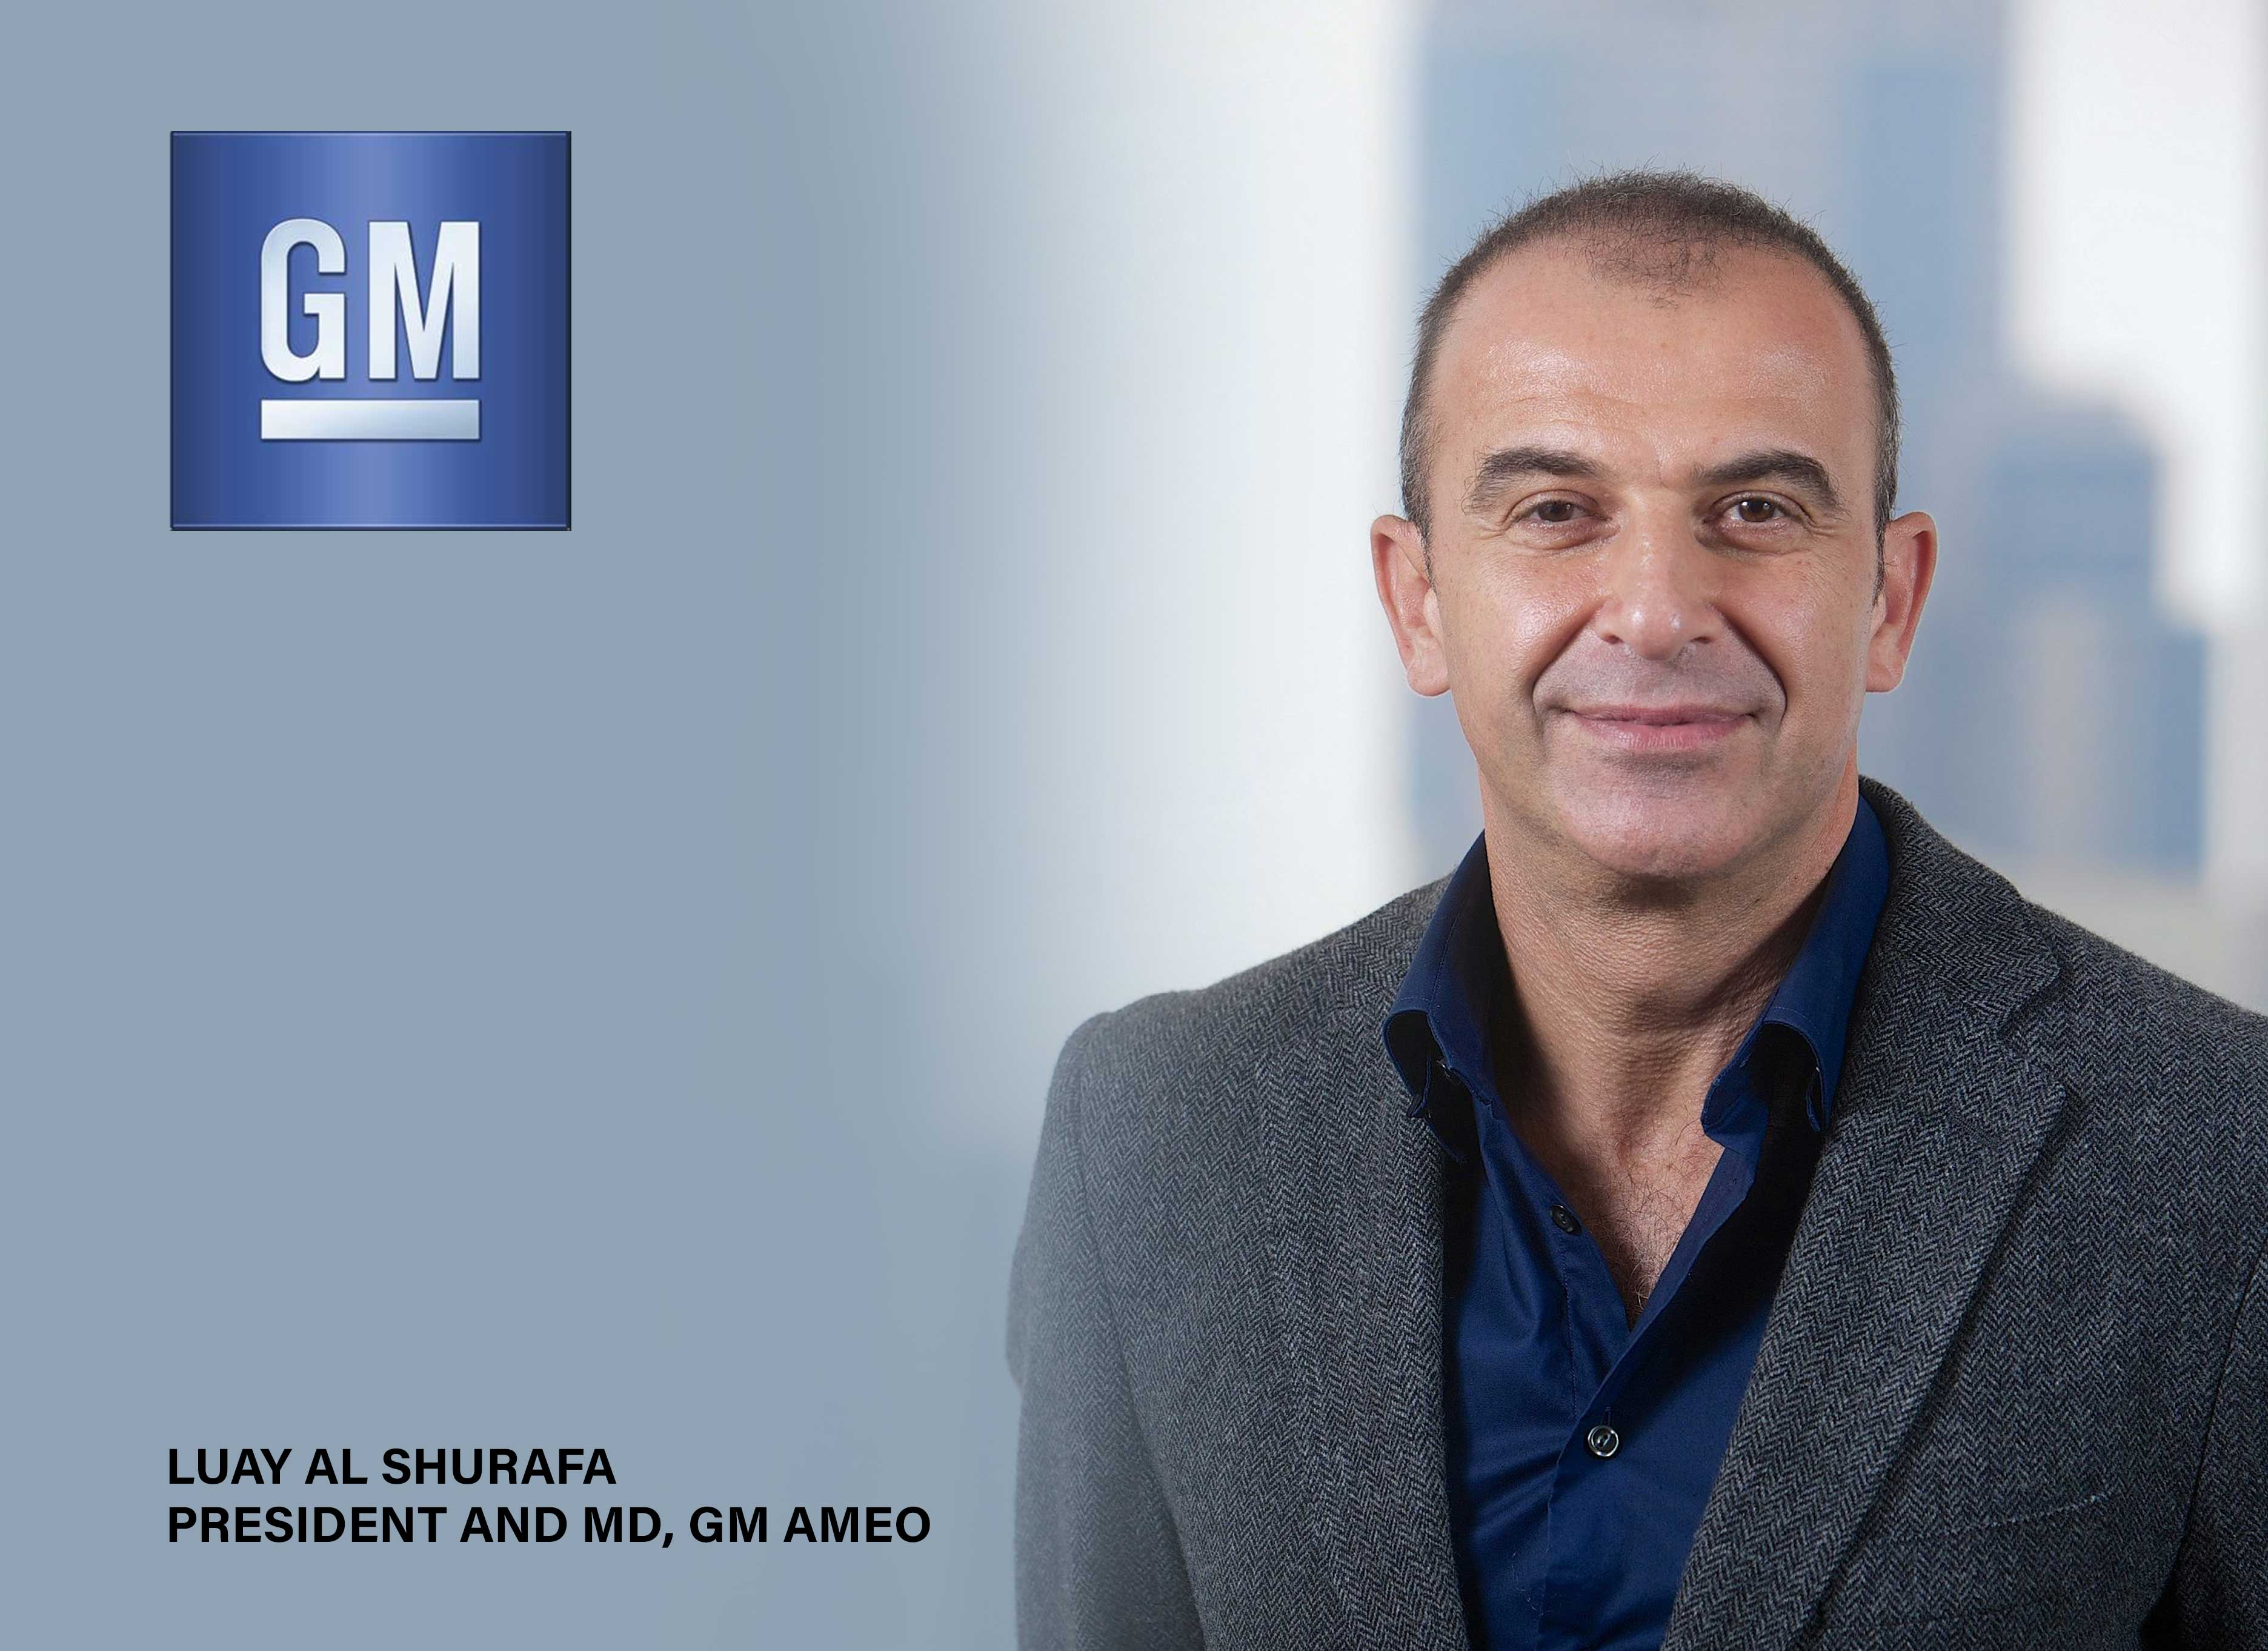 General Motors Appoints Luay Al Shurafa to Lead Africa and Middle East Business